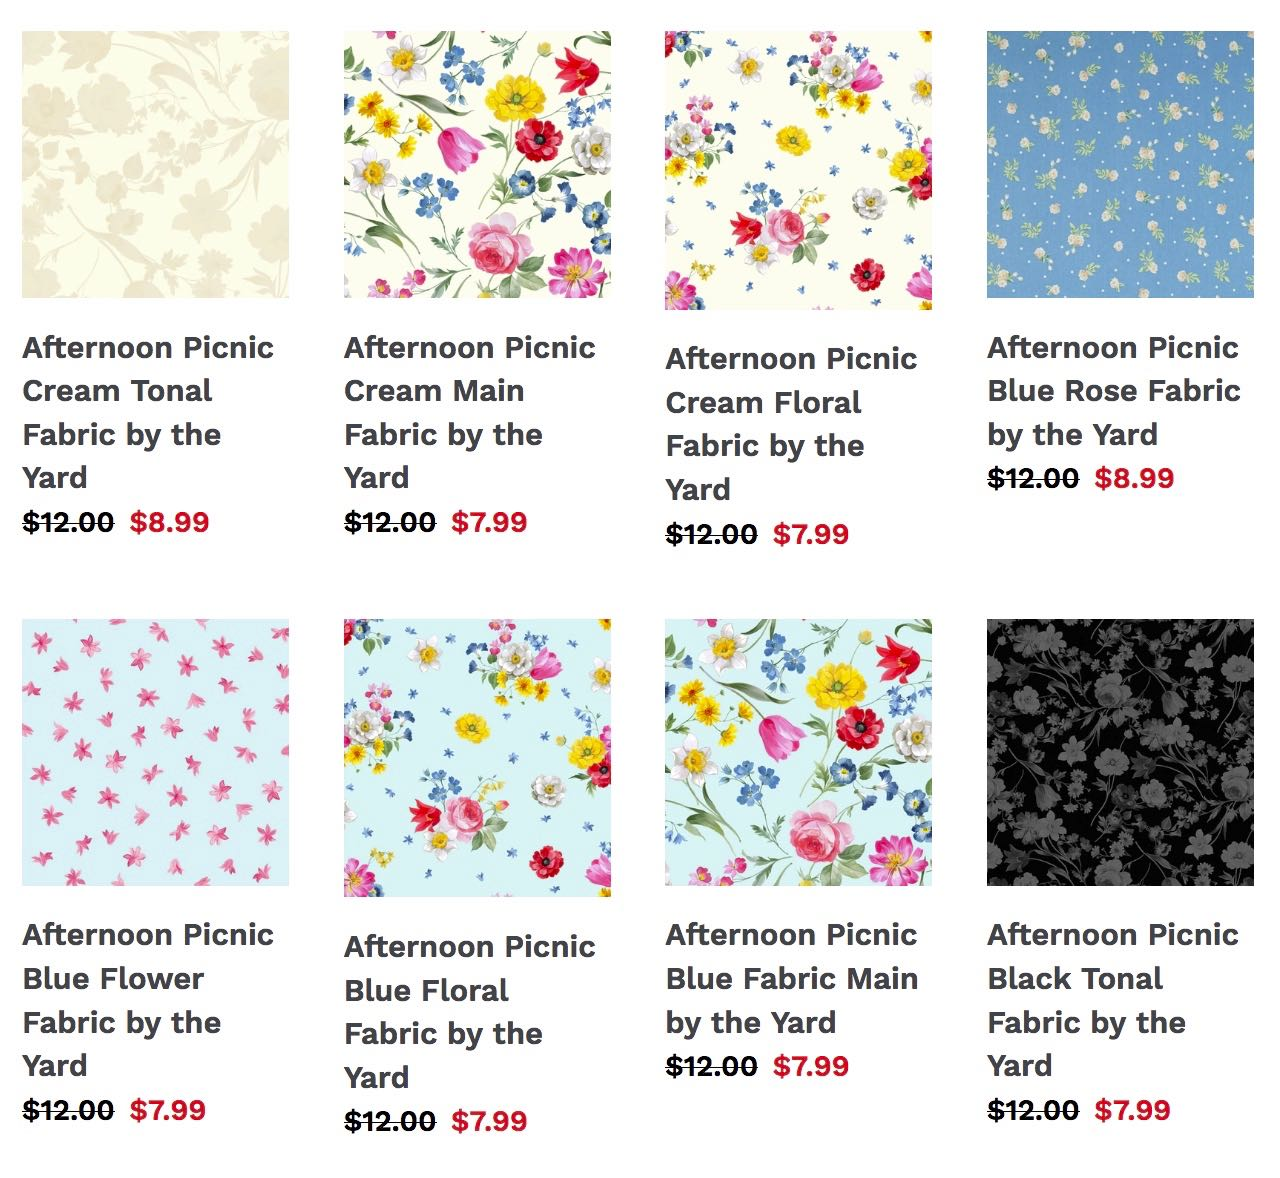 Afternoon Picnic Cotton Quilting Fabrics available at ShopNZP.com